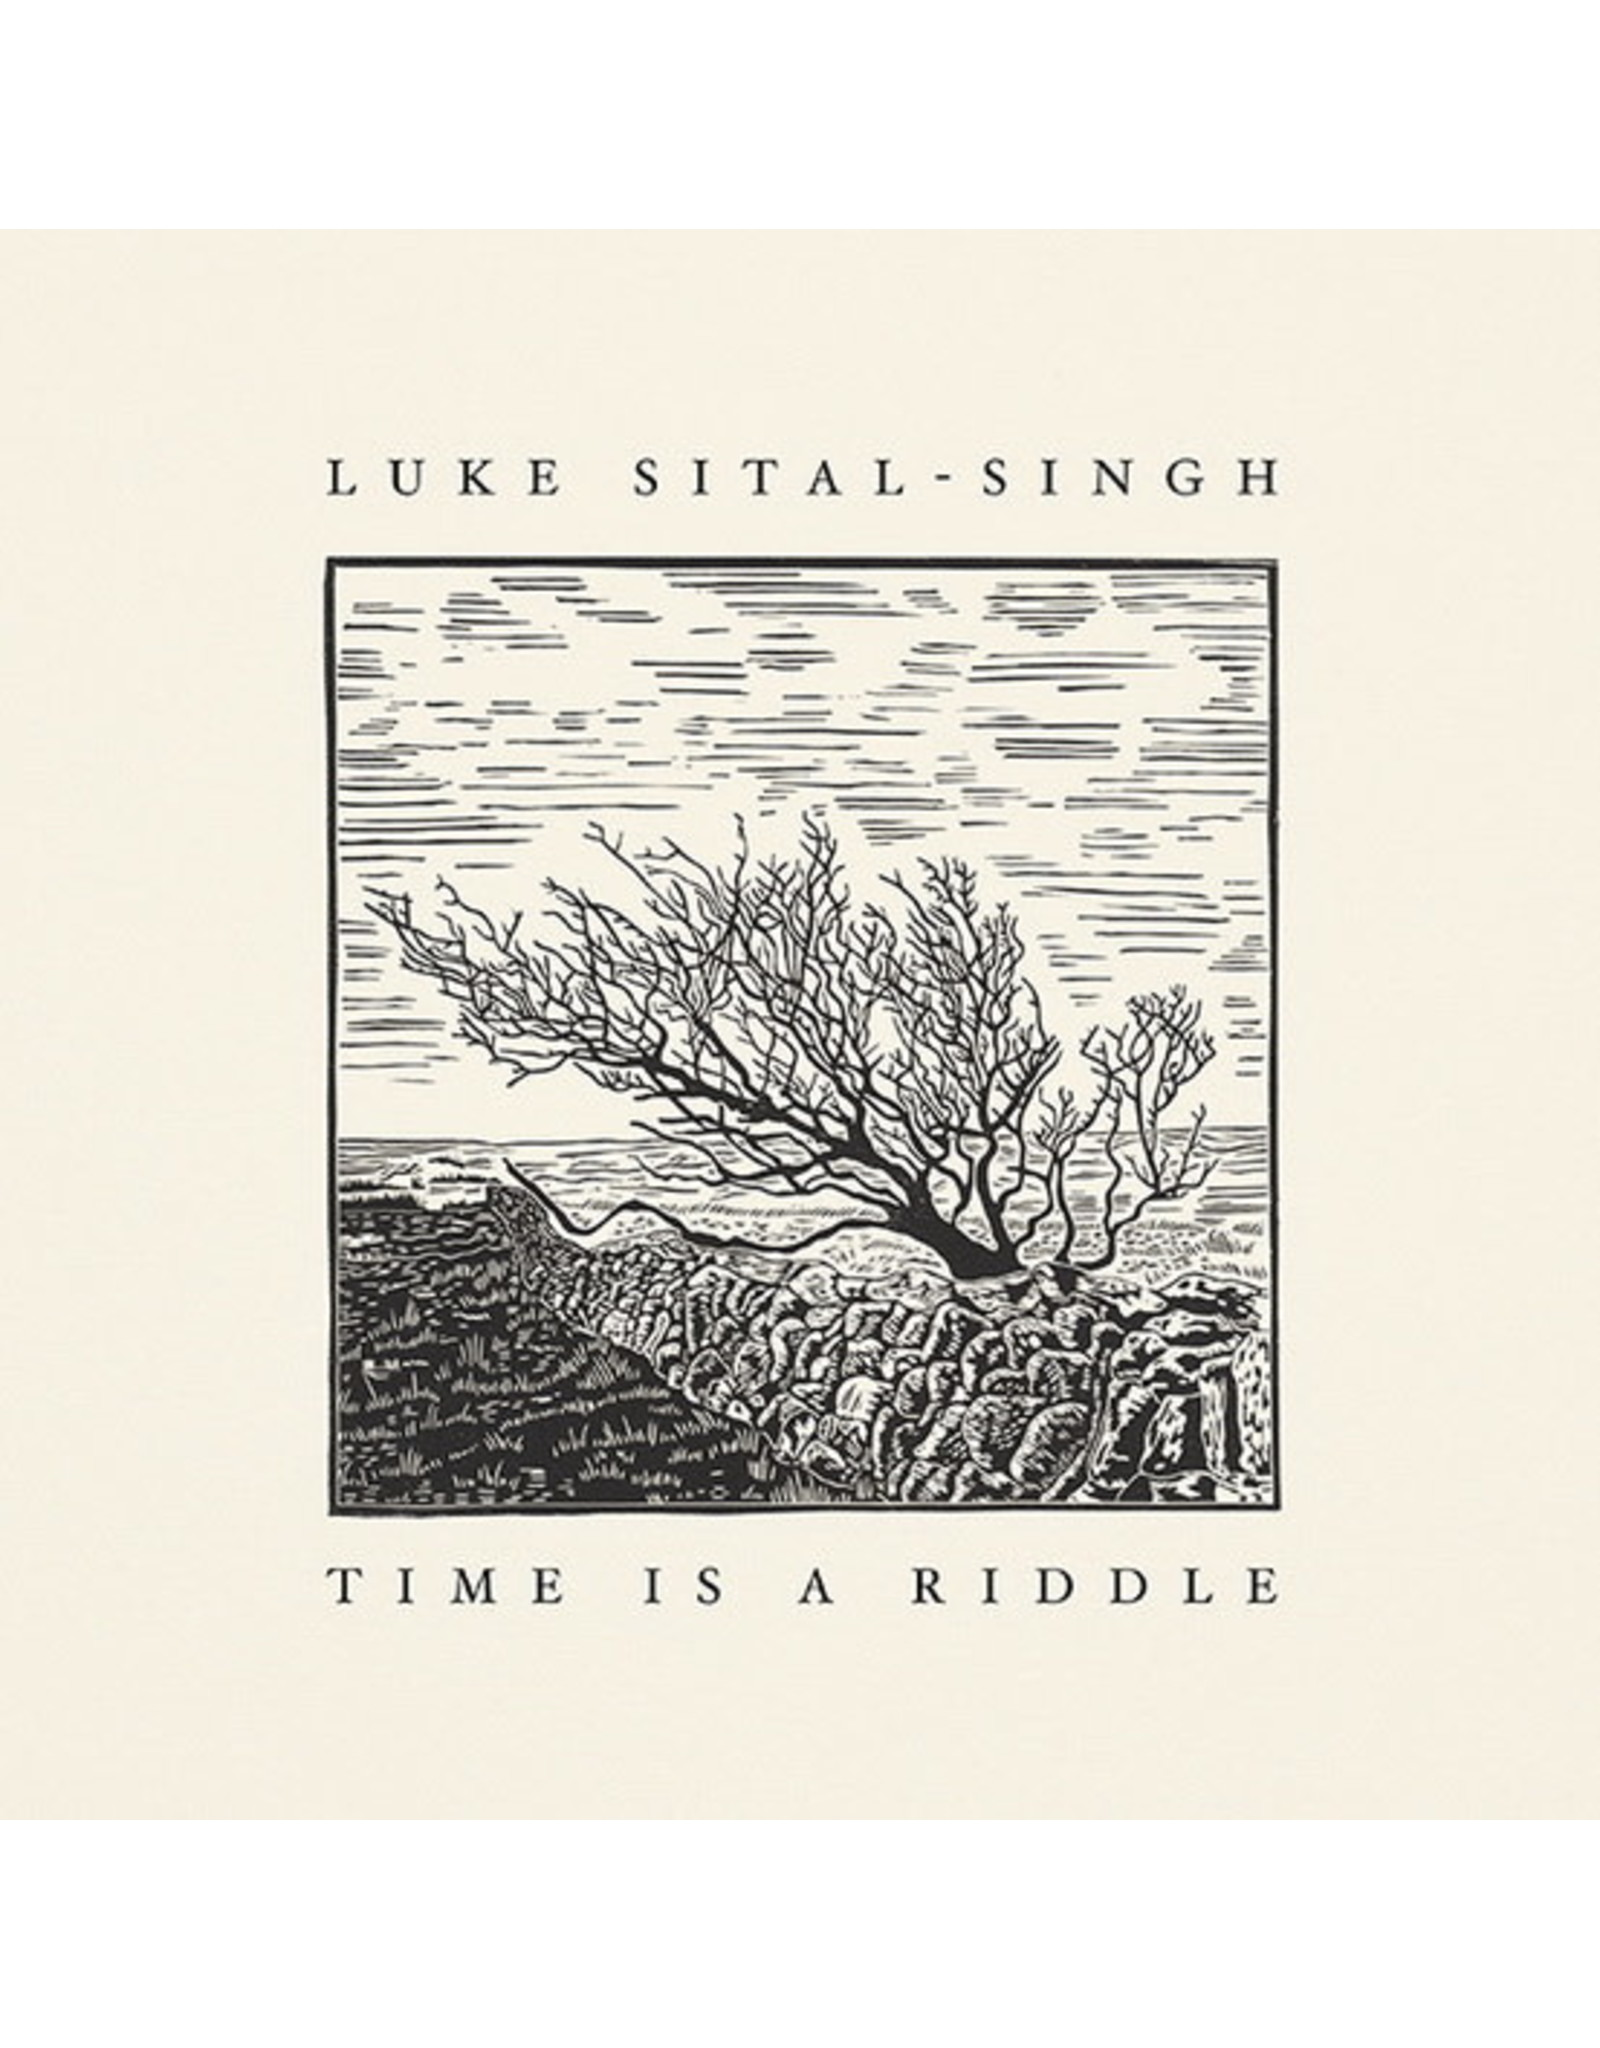 Sital-Singh, Luke - Time Is A Riddle LP